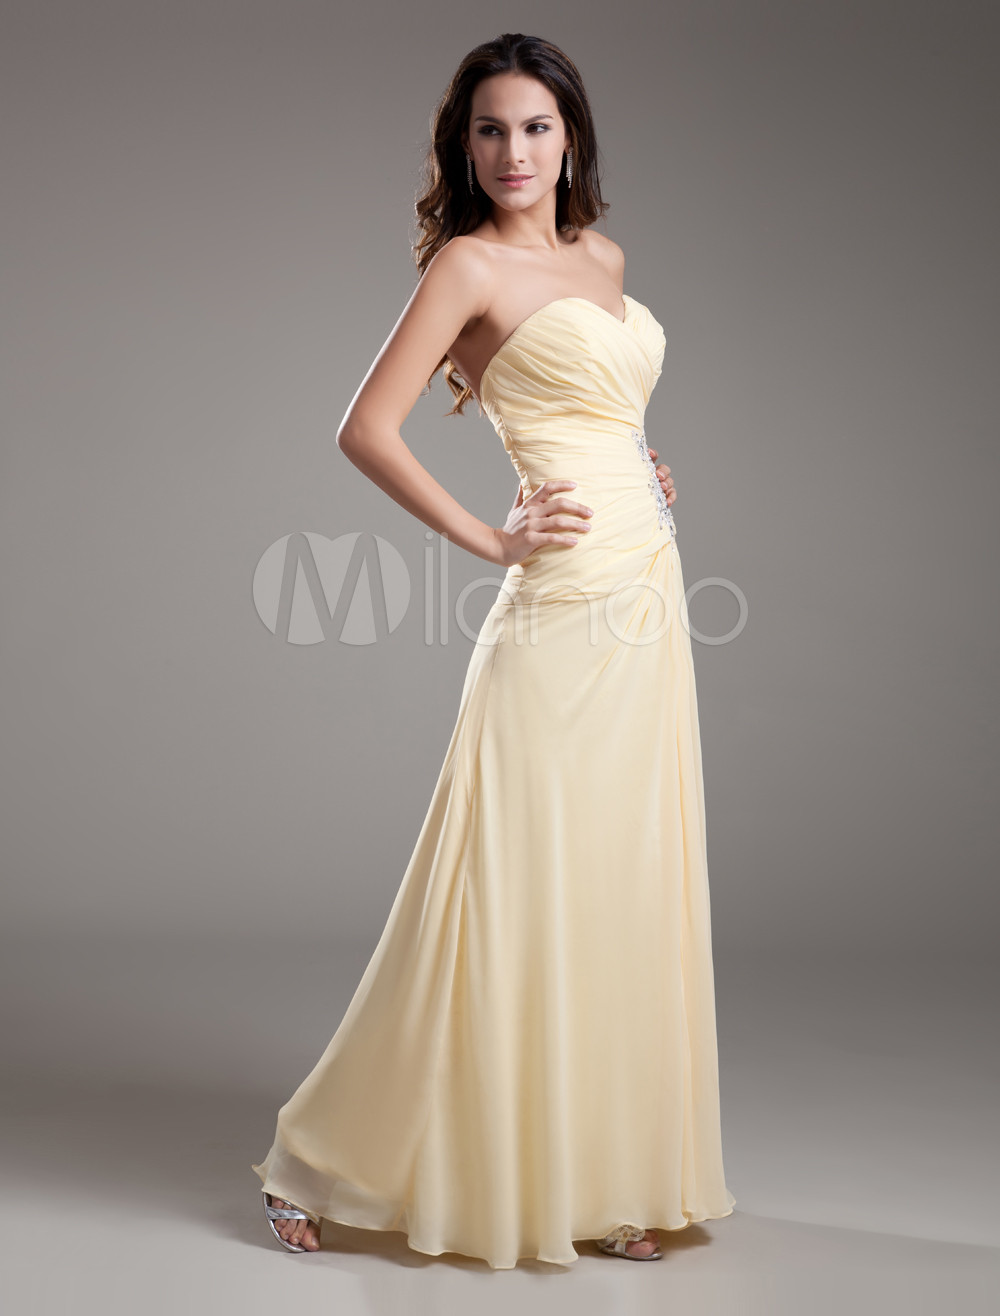 Buy Sheath Daffodil Sequin Chiffon Prom Dress with Sweetheart Neck for $132.99 in Milanoo store